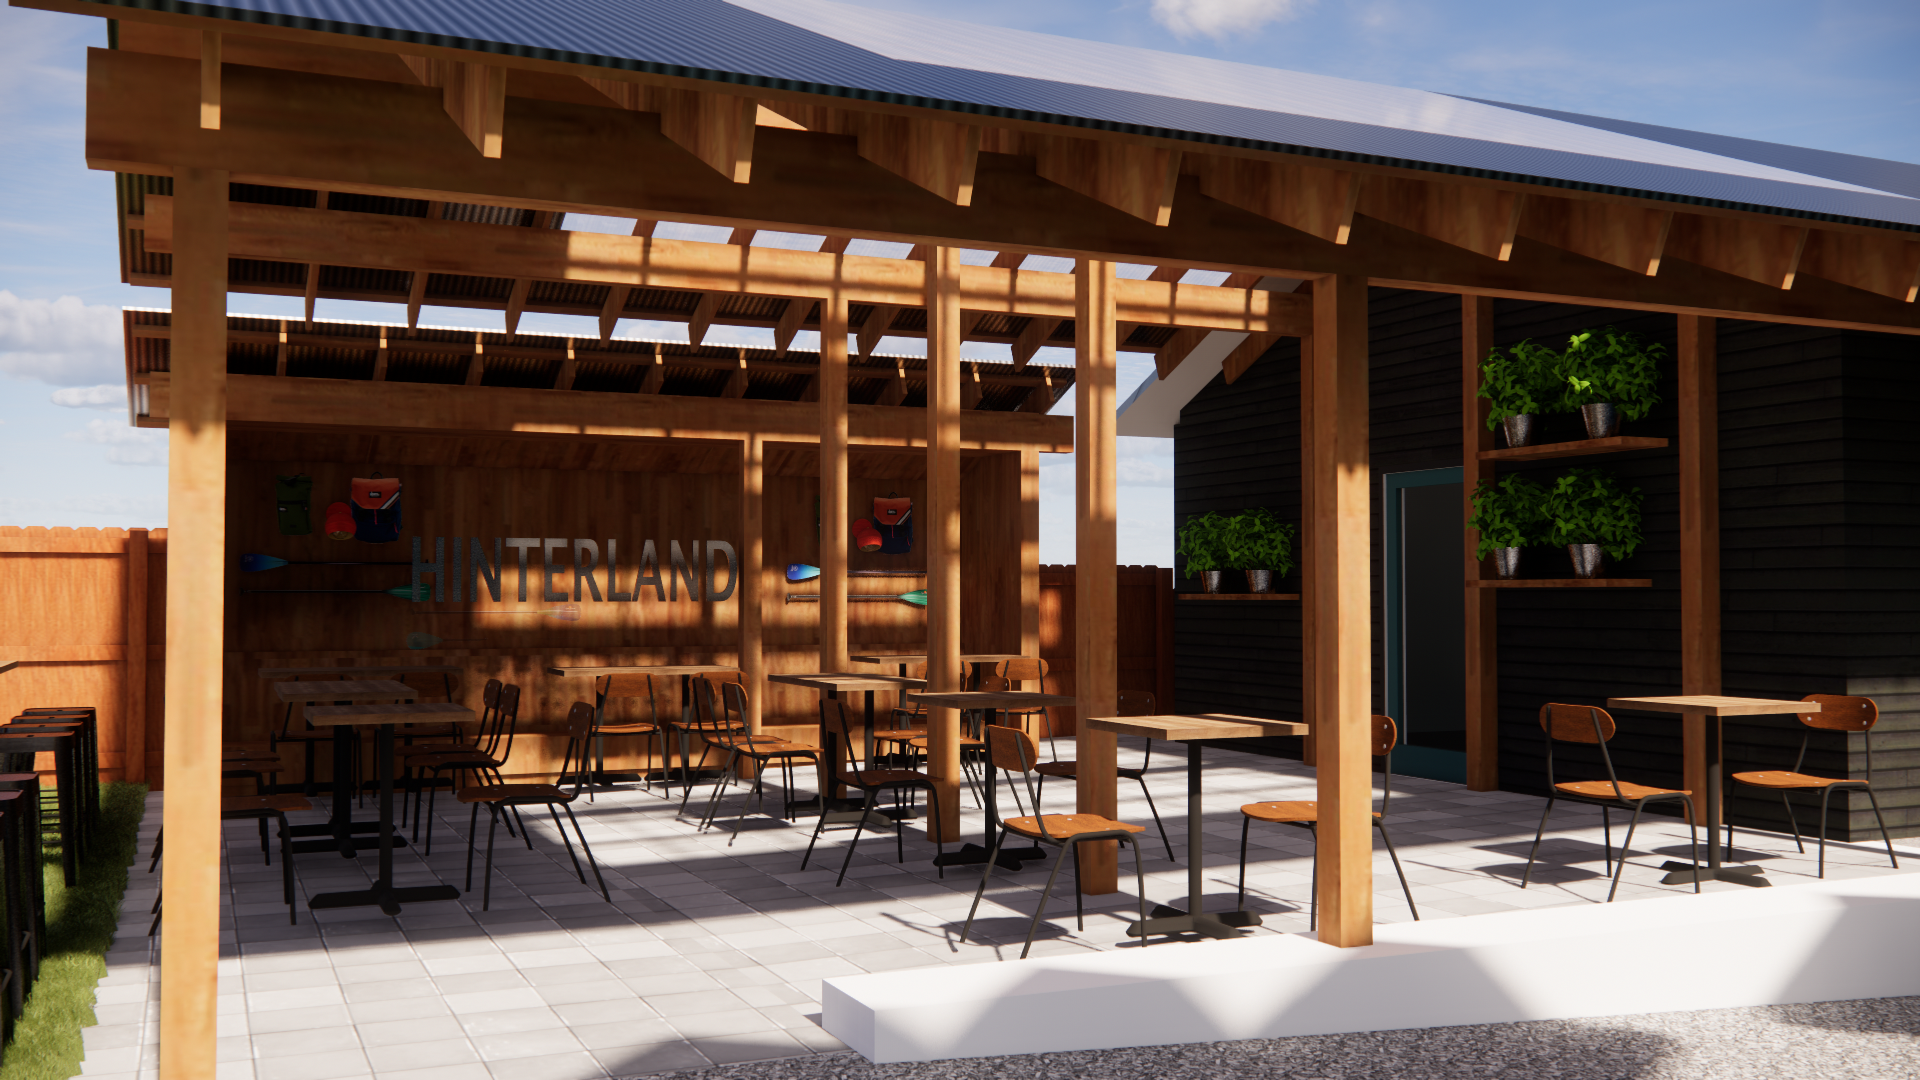 Tables and chairs are set up under a covered patio at Hinterland, with a bar out of frame.